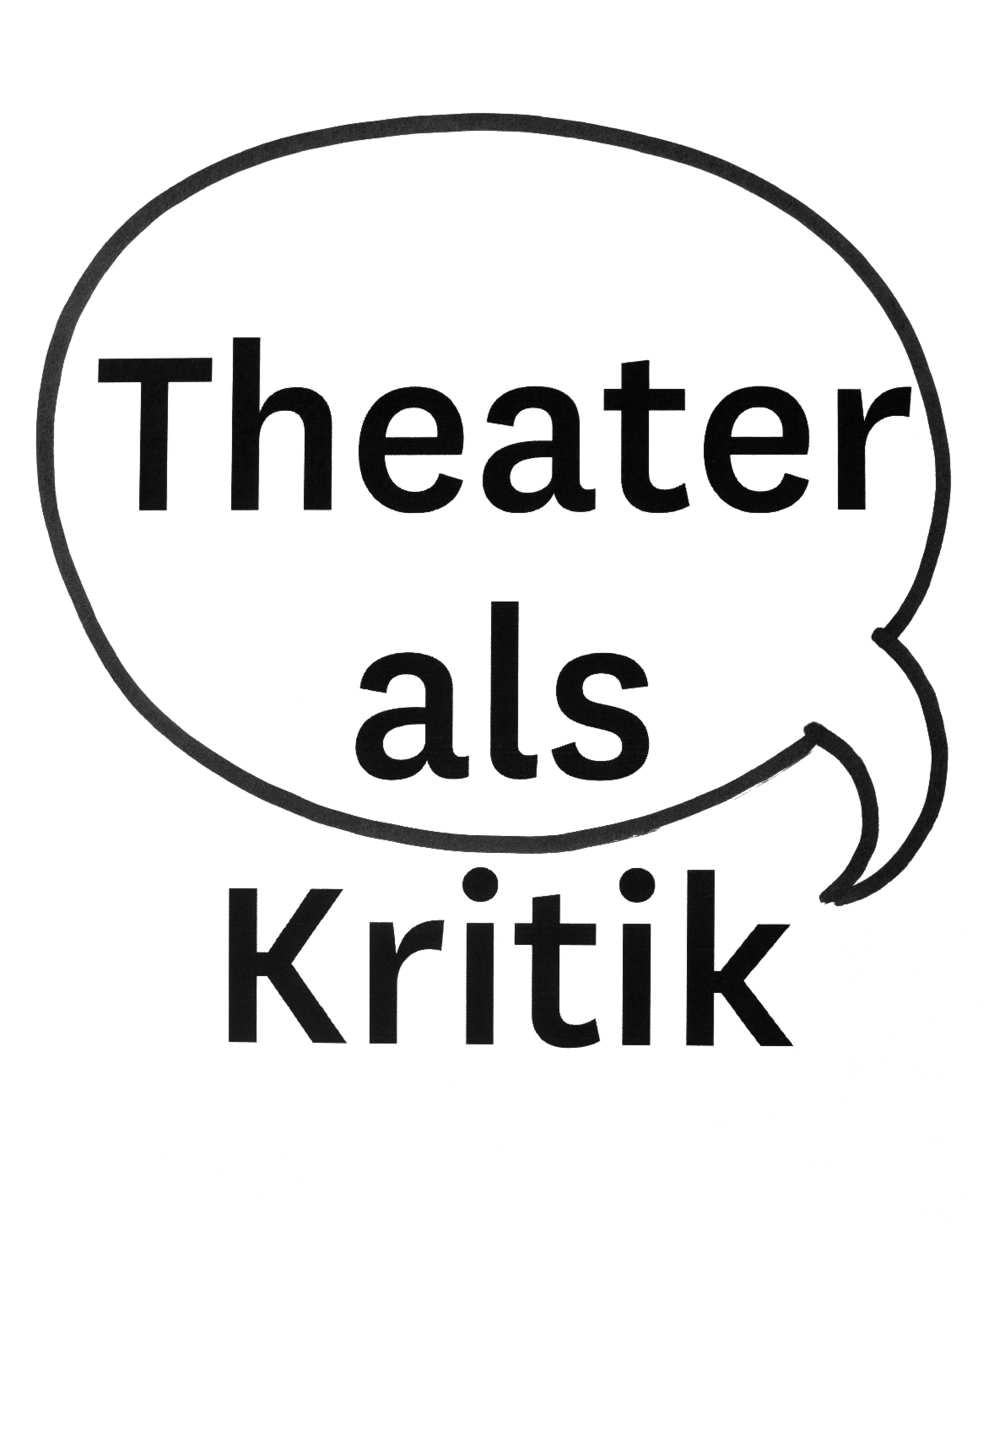 theater-as-critique-slip-21-1005x1435px